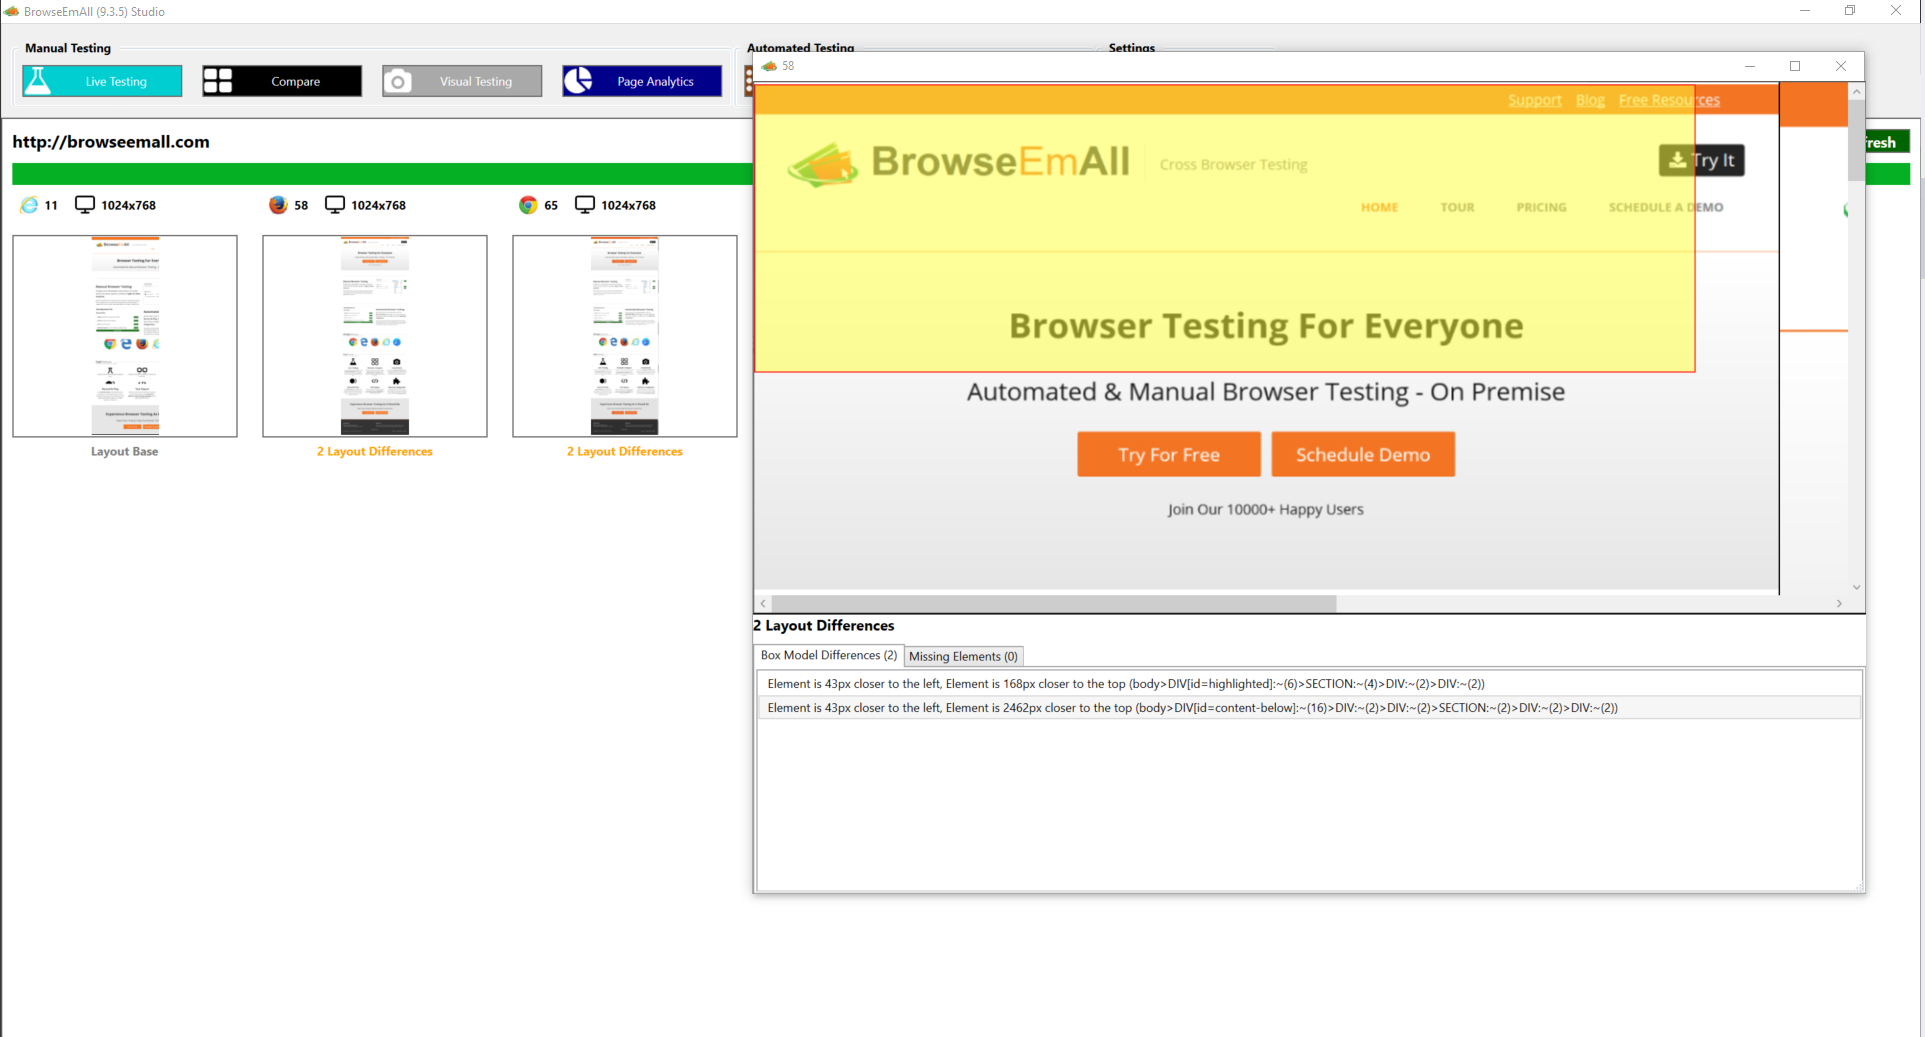 Enhance Your Browser Testing | BrowseEmAll